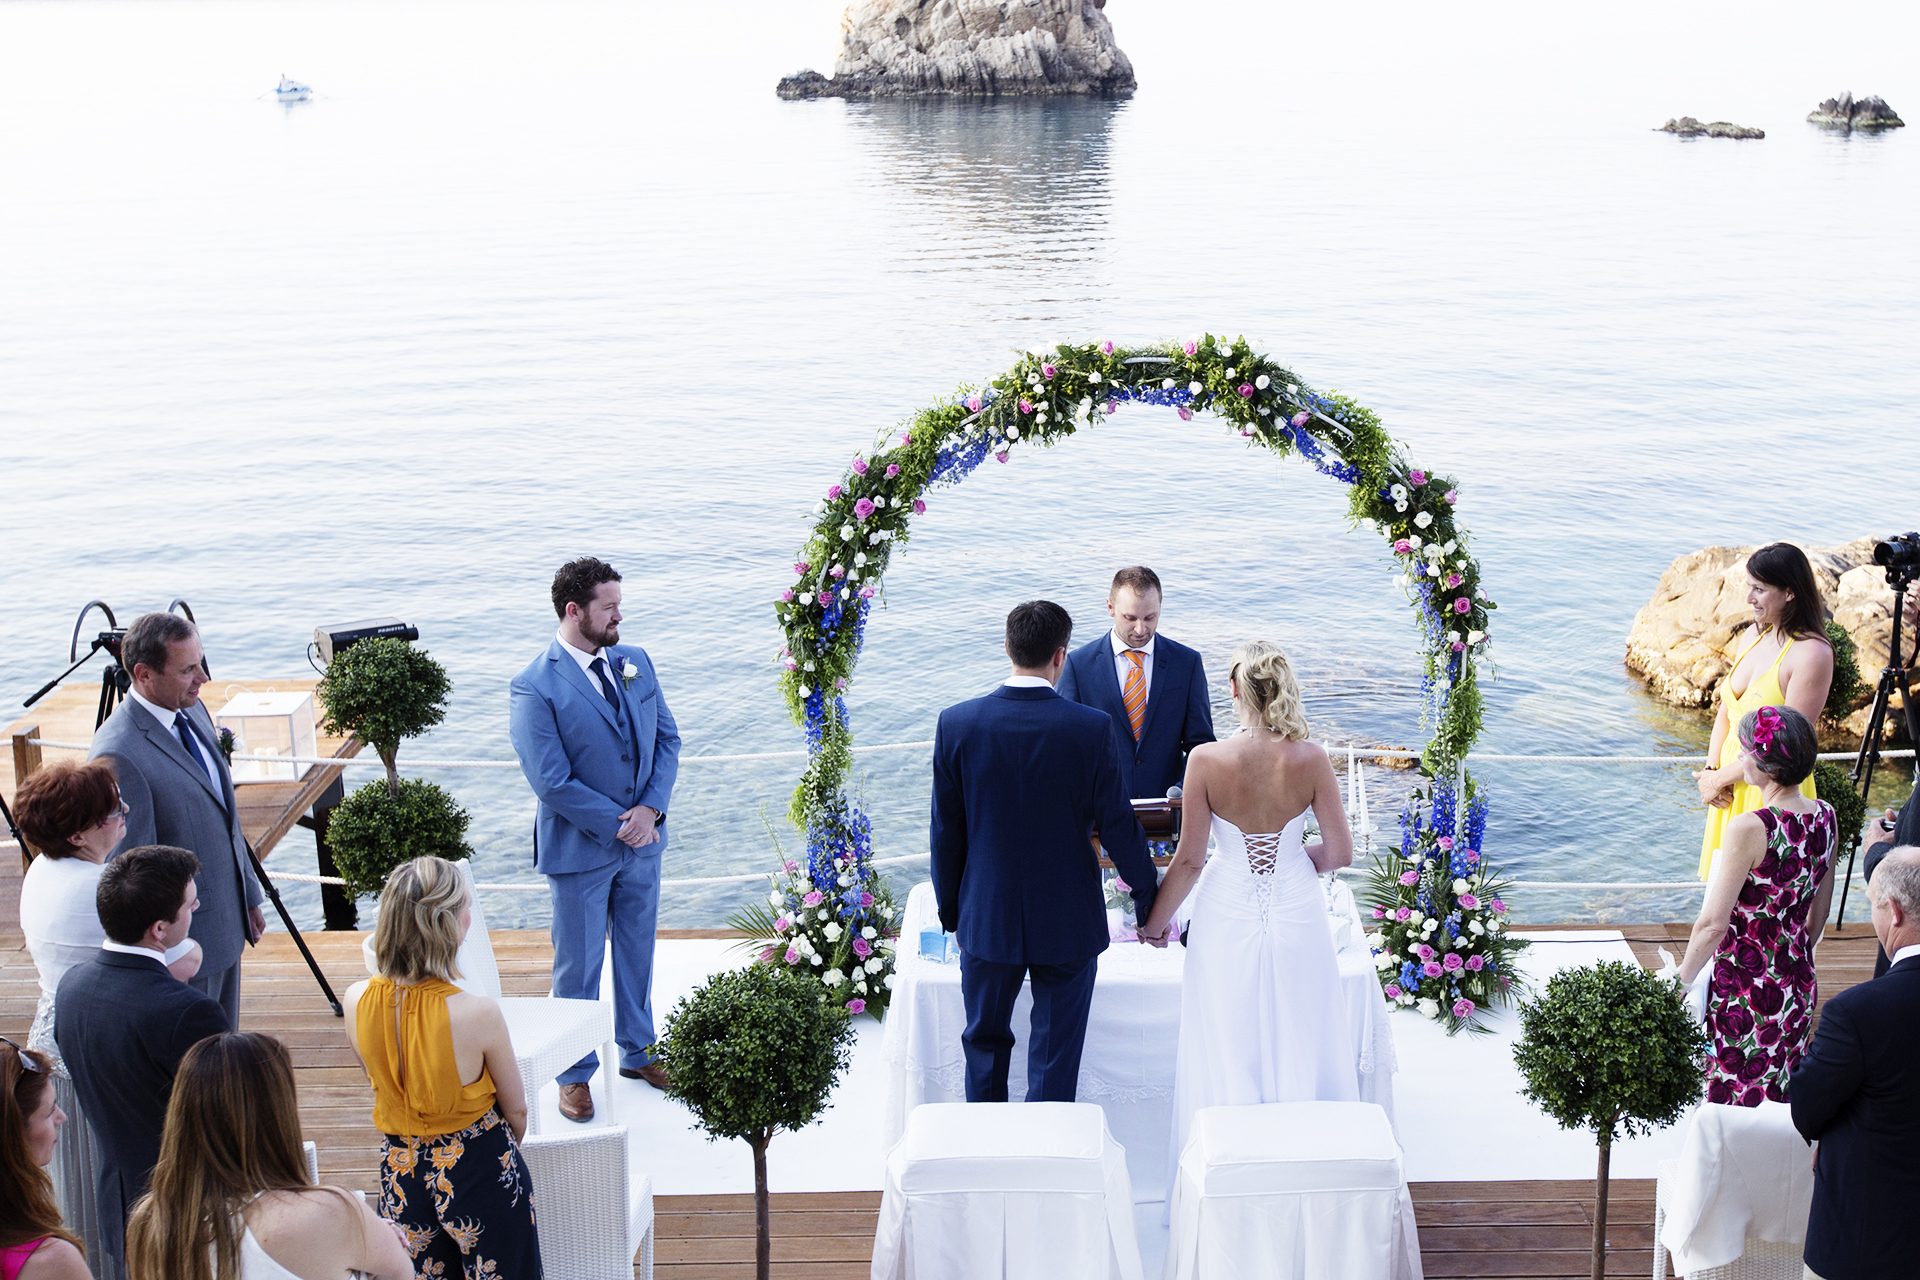 Cefalù, Palermo, Sicily, Italy Beach Wedding Ceremony Image | The ceremony at Le Calette was photographed from many angles